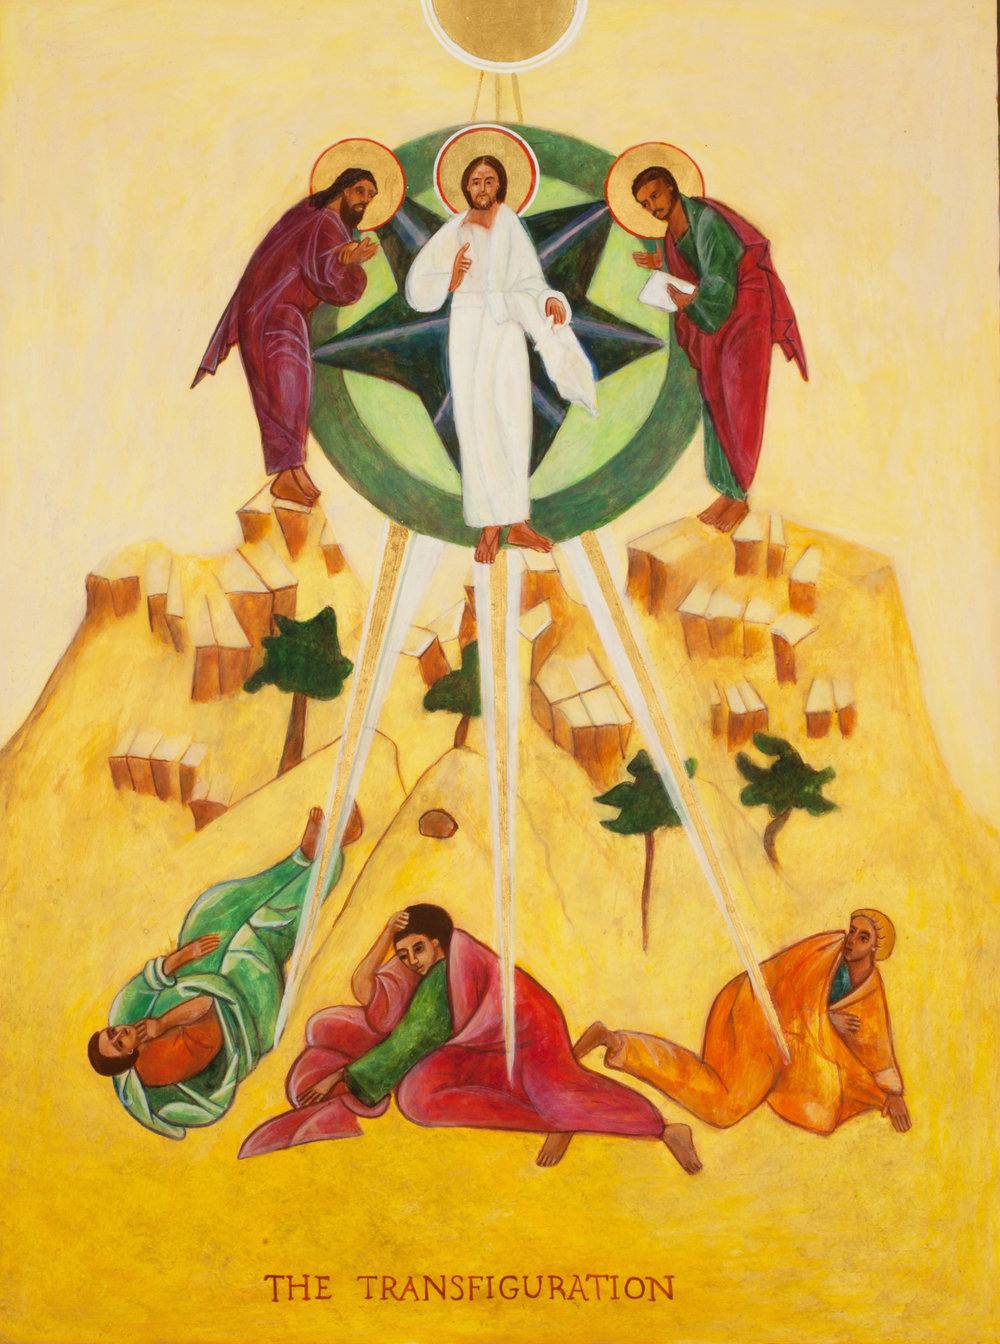 The Transfiguration - This Icon is a wonderful example not only of sacred geometry, but of the use of space in an Icon. Here we see the central axis of the Icon is Christ, God the Father(indicated by the half circle of Gold at the top center), the Holy Spirit (indicated by the rays of Gold emanating from the circle)- the Trinity.  The circle from which Christ stands includes the two Prophets, Moses and Isaiah - bringing the Old Testament time into relationship with New Testament time of the Apostles, James, John, and Peter below. The light that infuses the entire Icon is the light of God, His Presence during this moment.